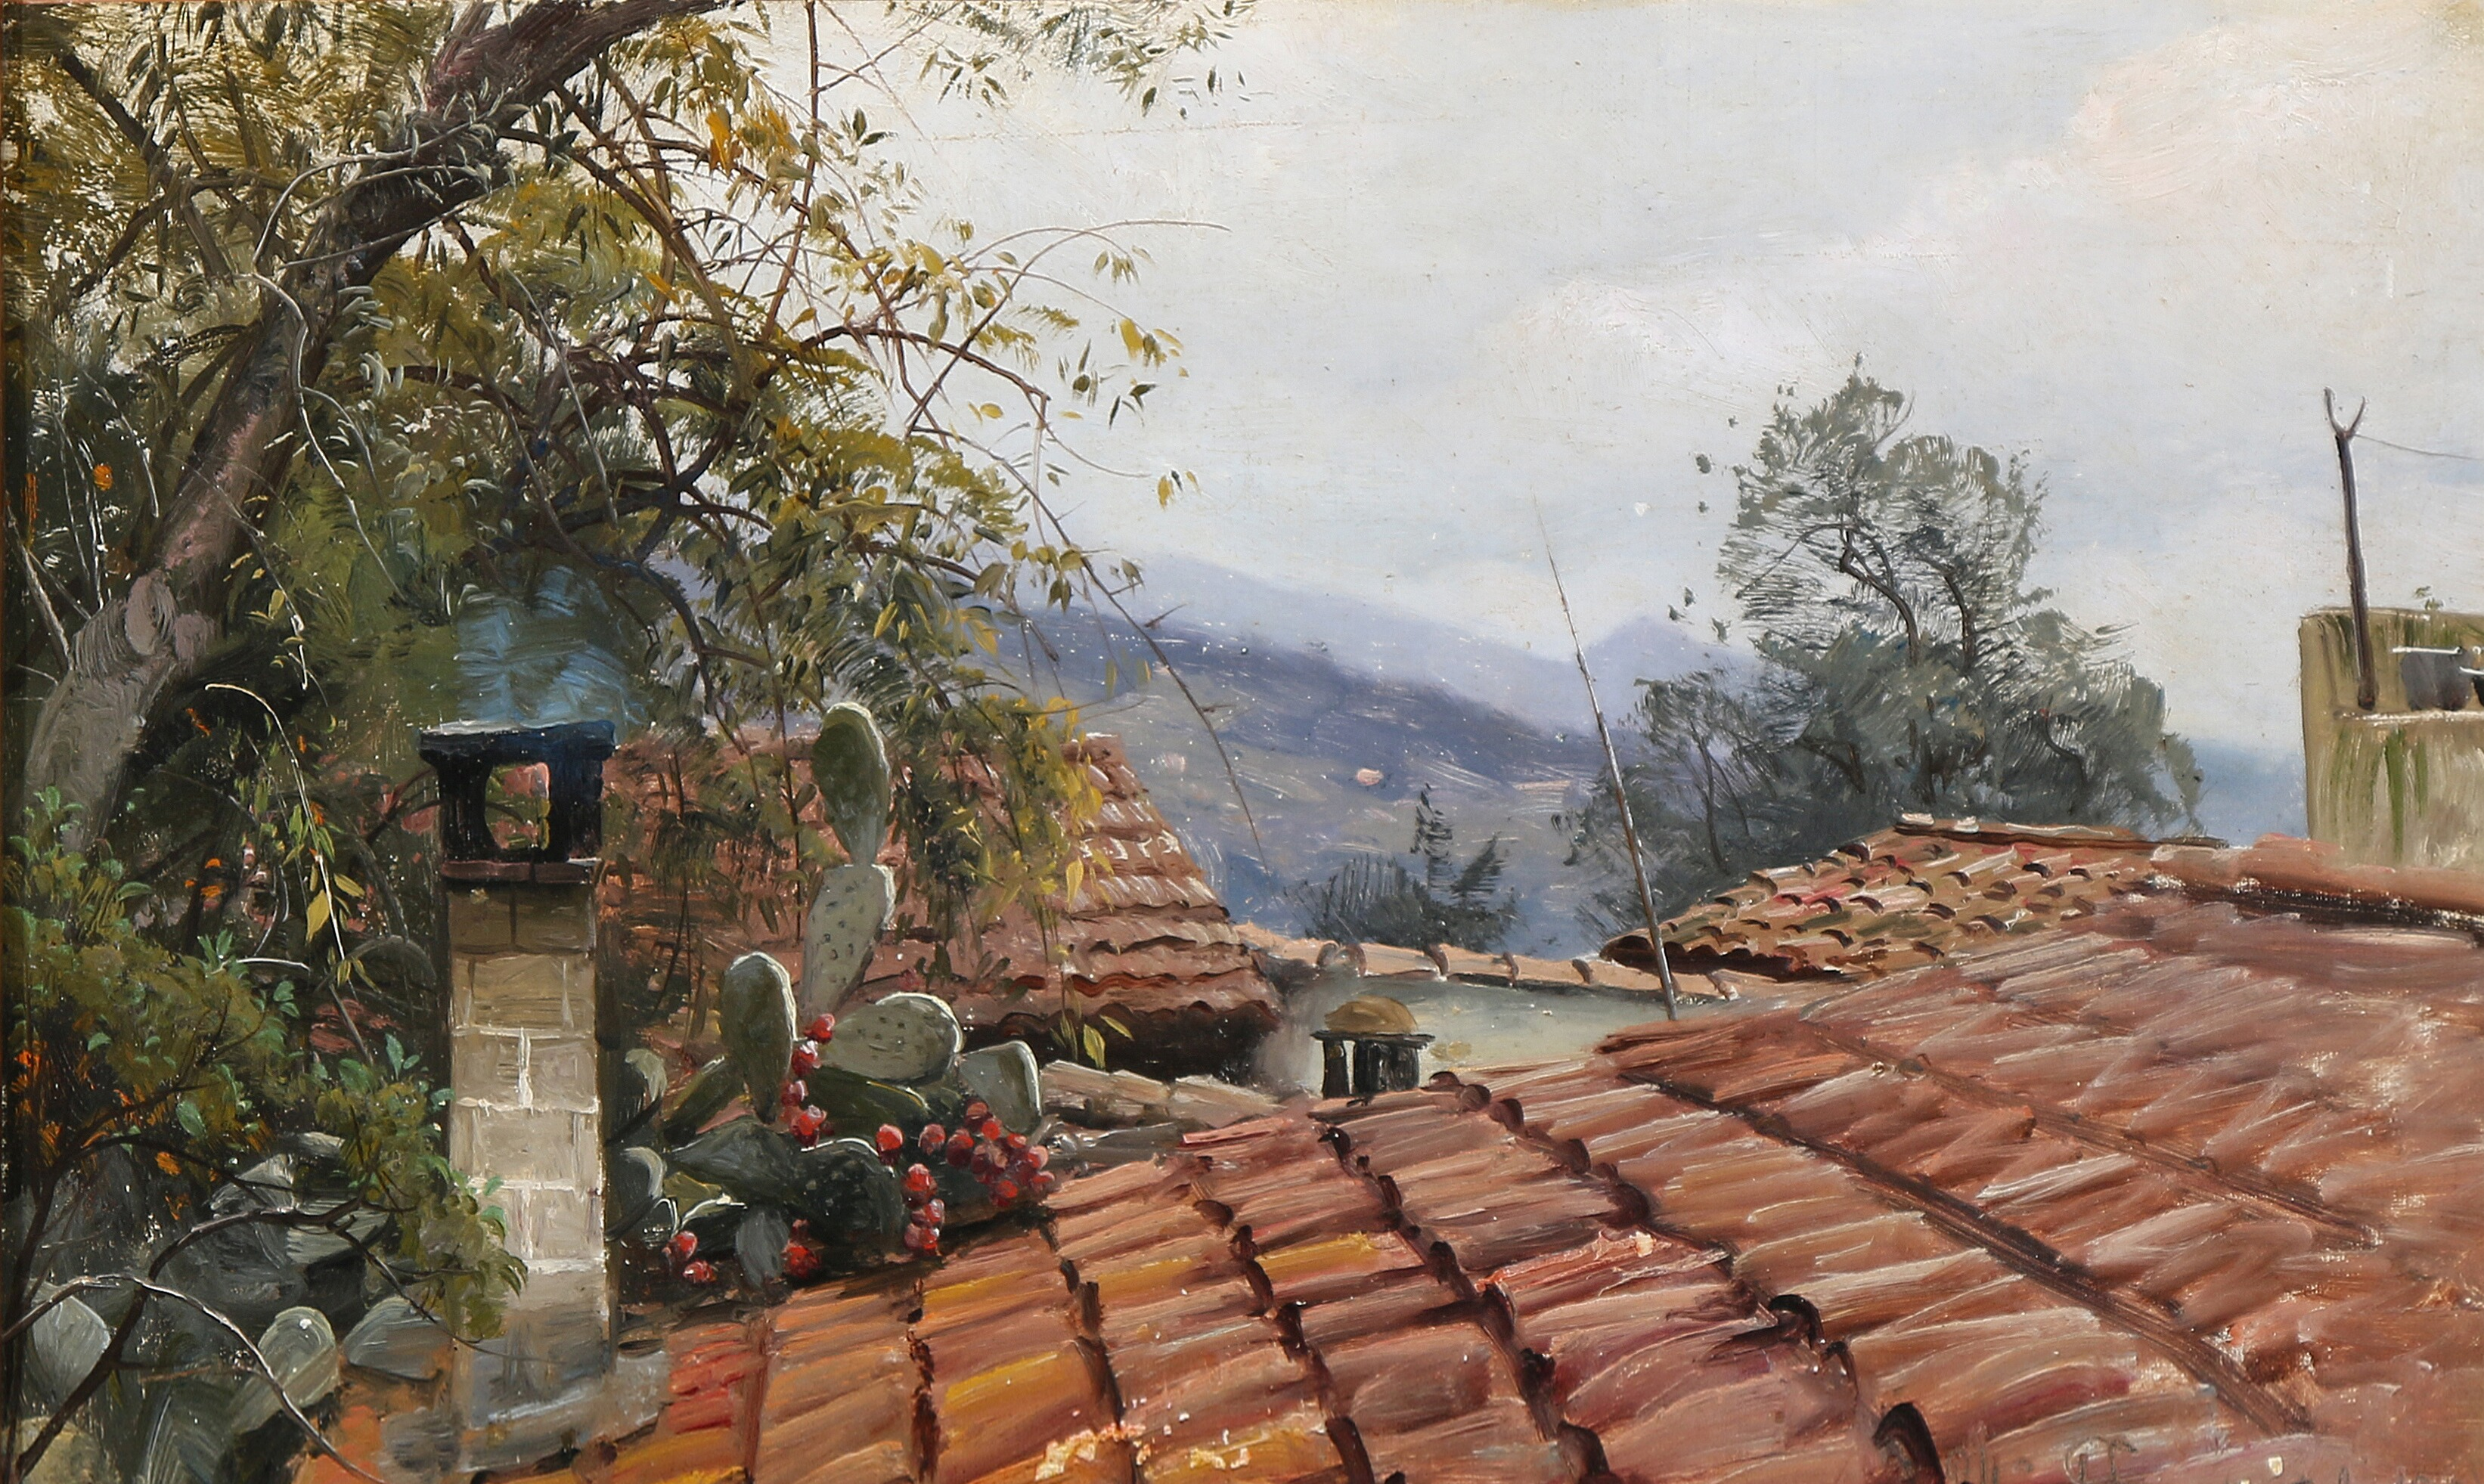 Peder Mørk Mønsted, A cactus growing on the old rooftops in Italy